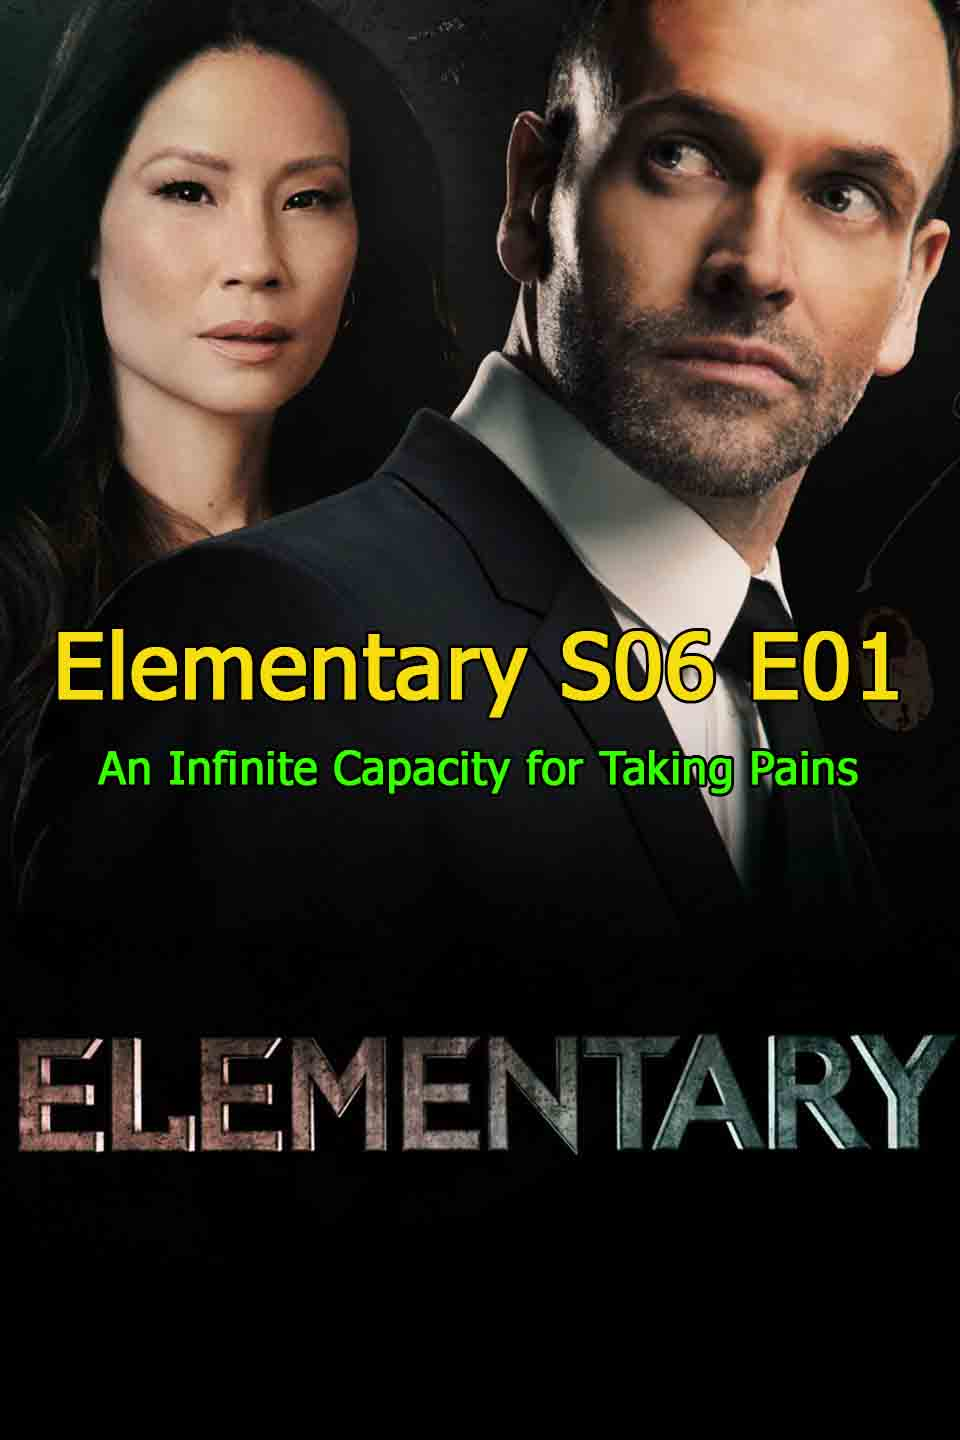 Watch Elementary Season 6 Episode 1: An Infinite Capacity for Taking Pains thumbnail